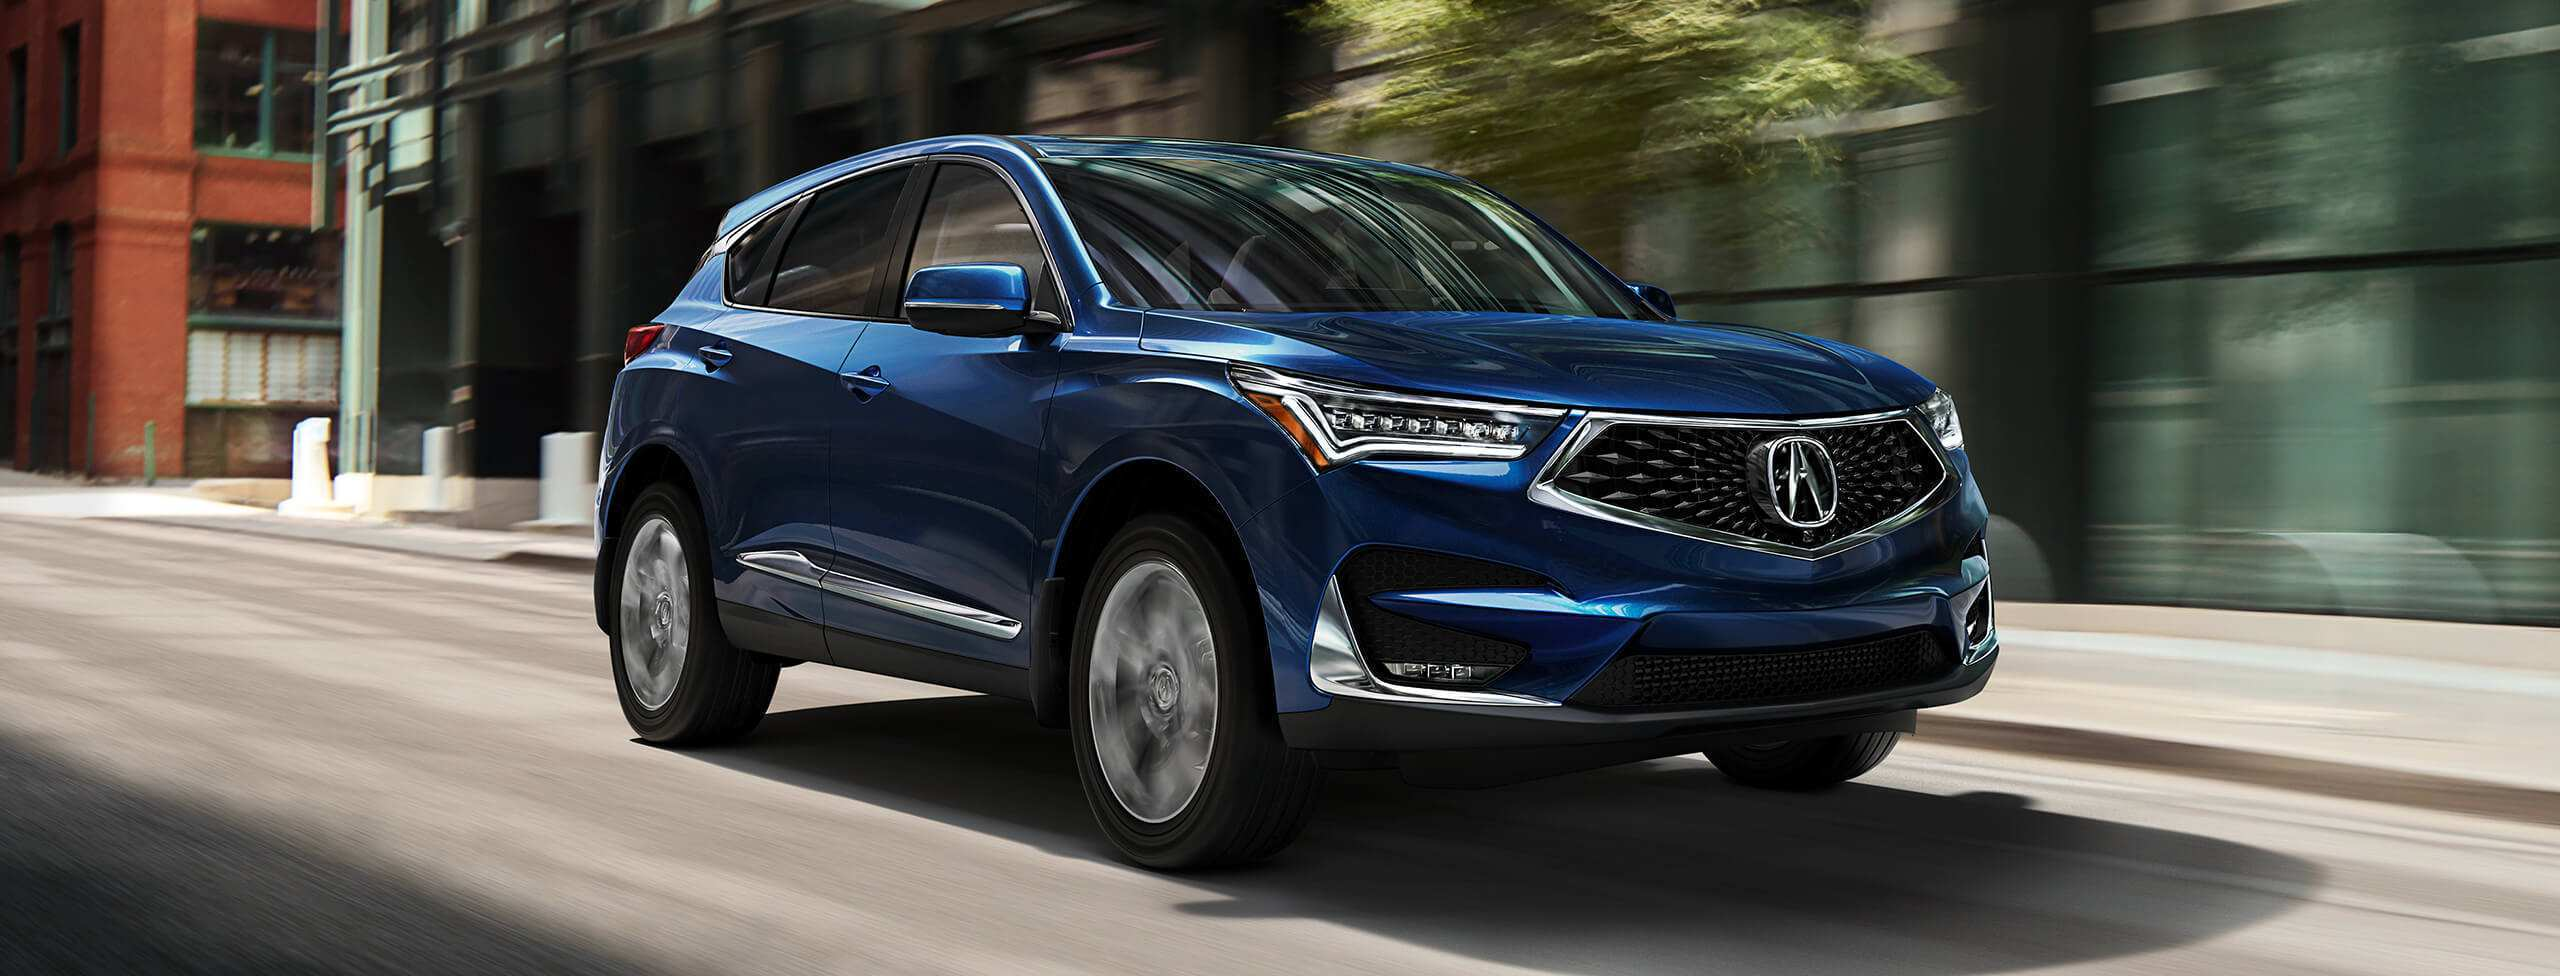 49 New 2020 Acura Rdx V6 Concept And Review